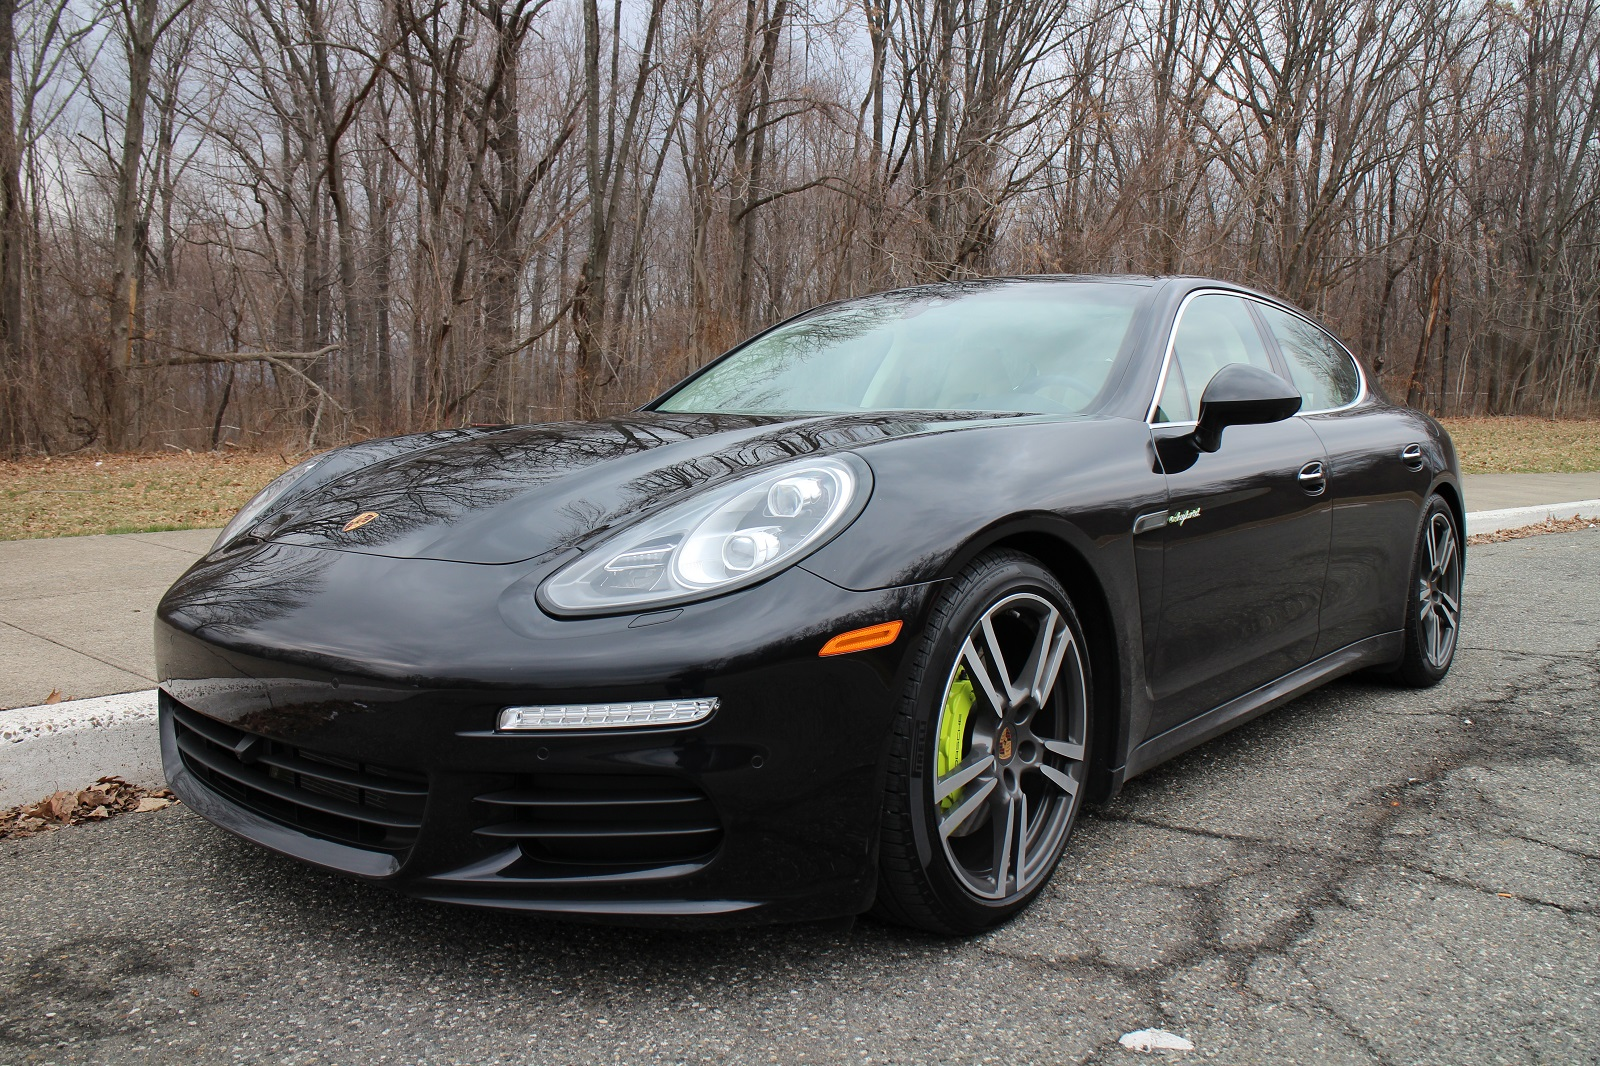 2014 Porsche Panamera S E-Hybrid: Gas Mileage Review Of ...